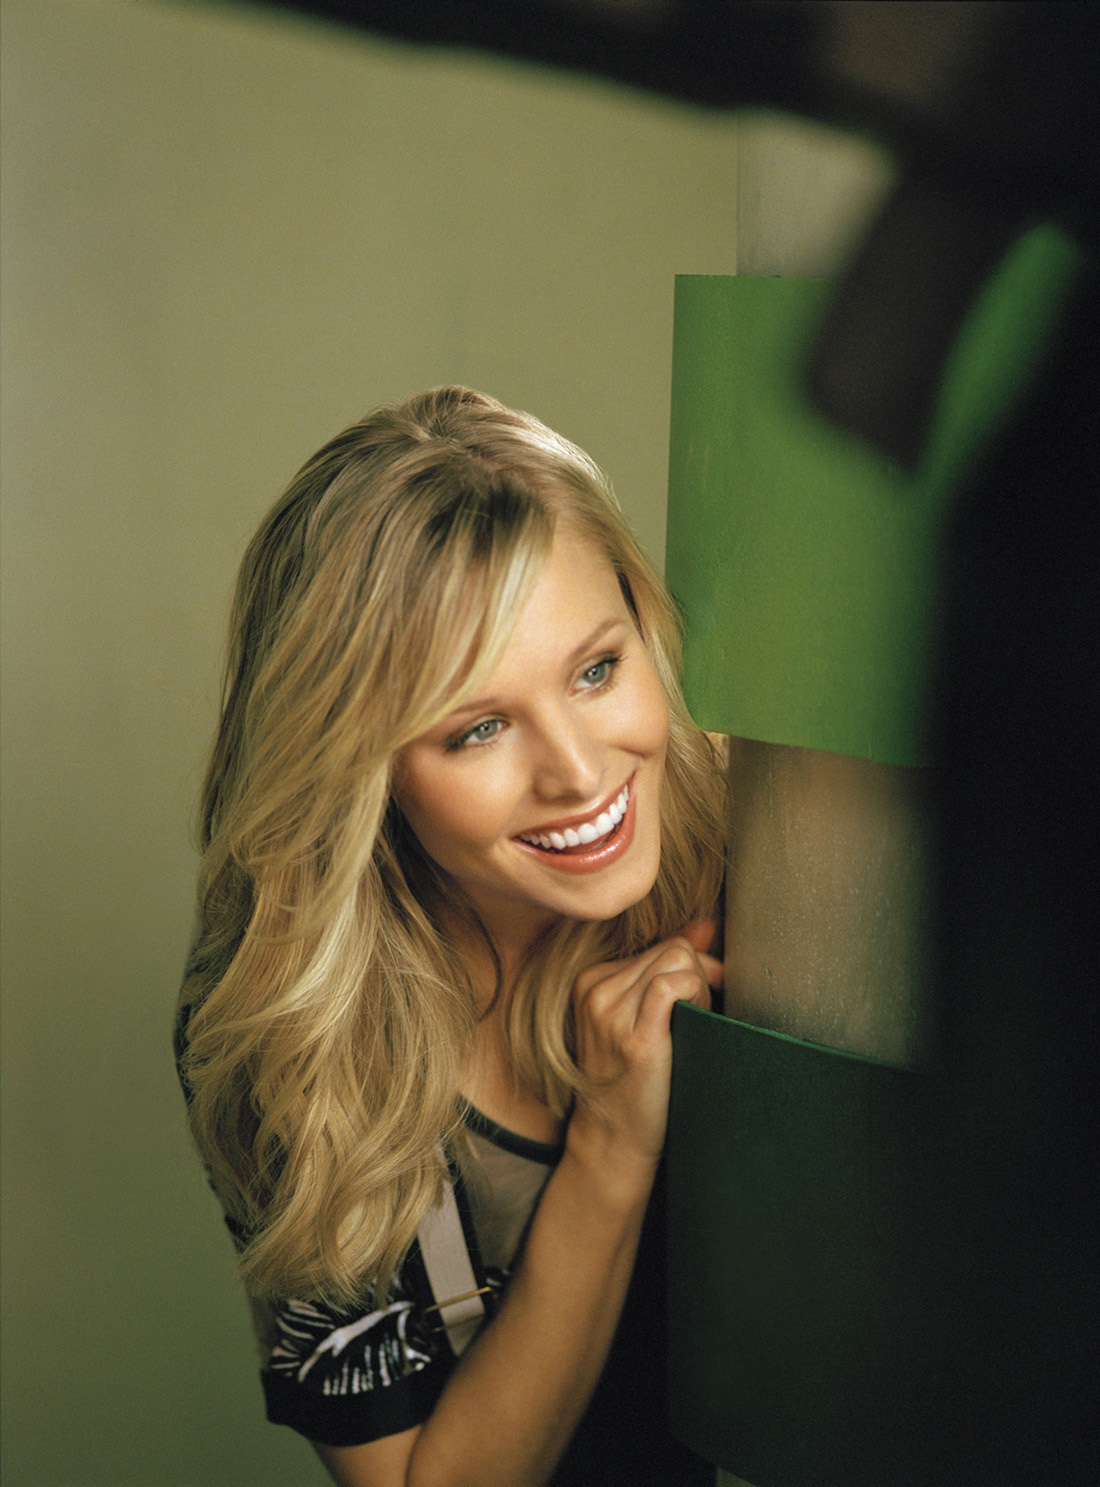 veronica mars photoshoots - Veronica Mars Photo (9575215) - Fanpop